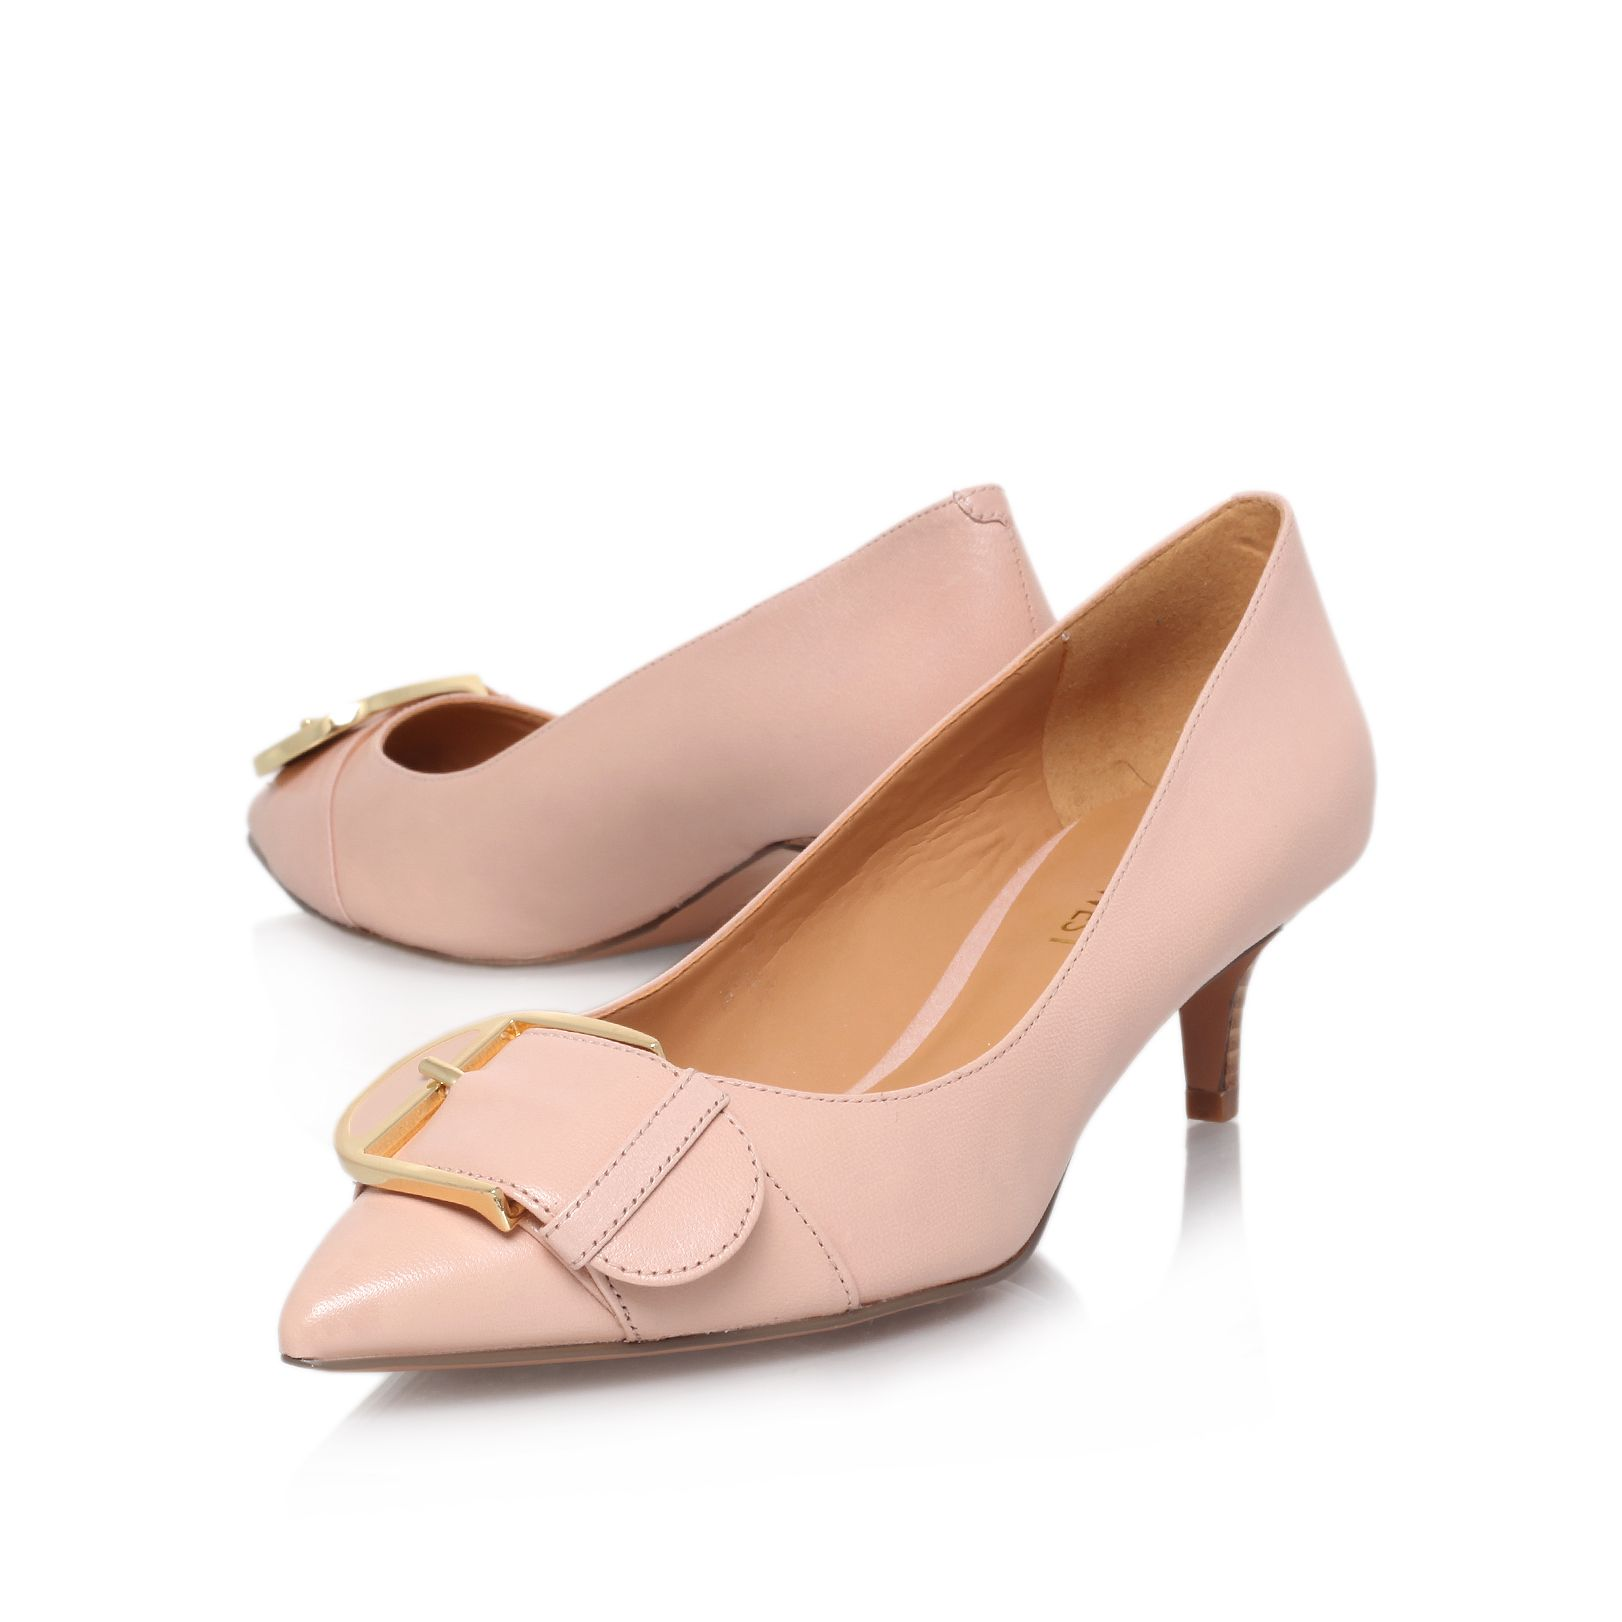 Paylette low heeled court shoes